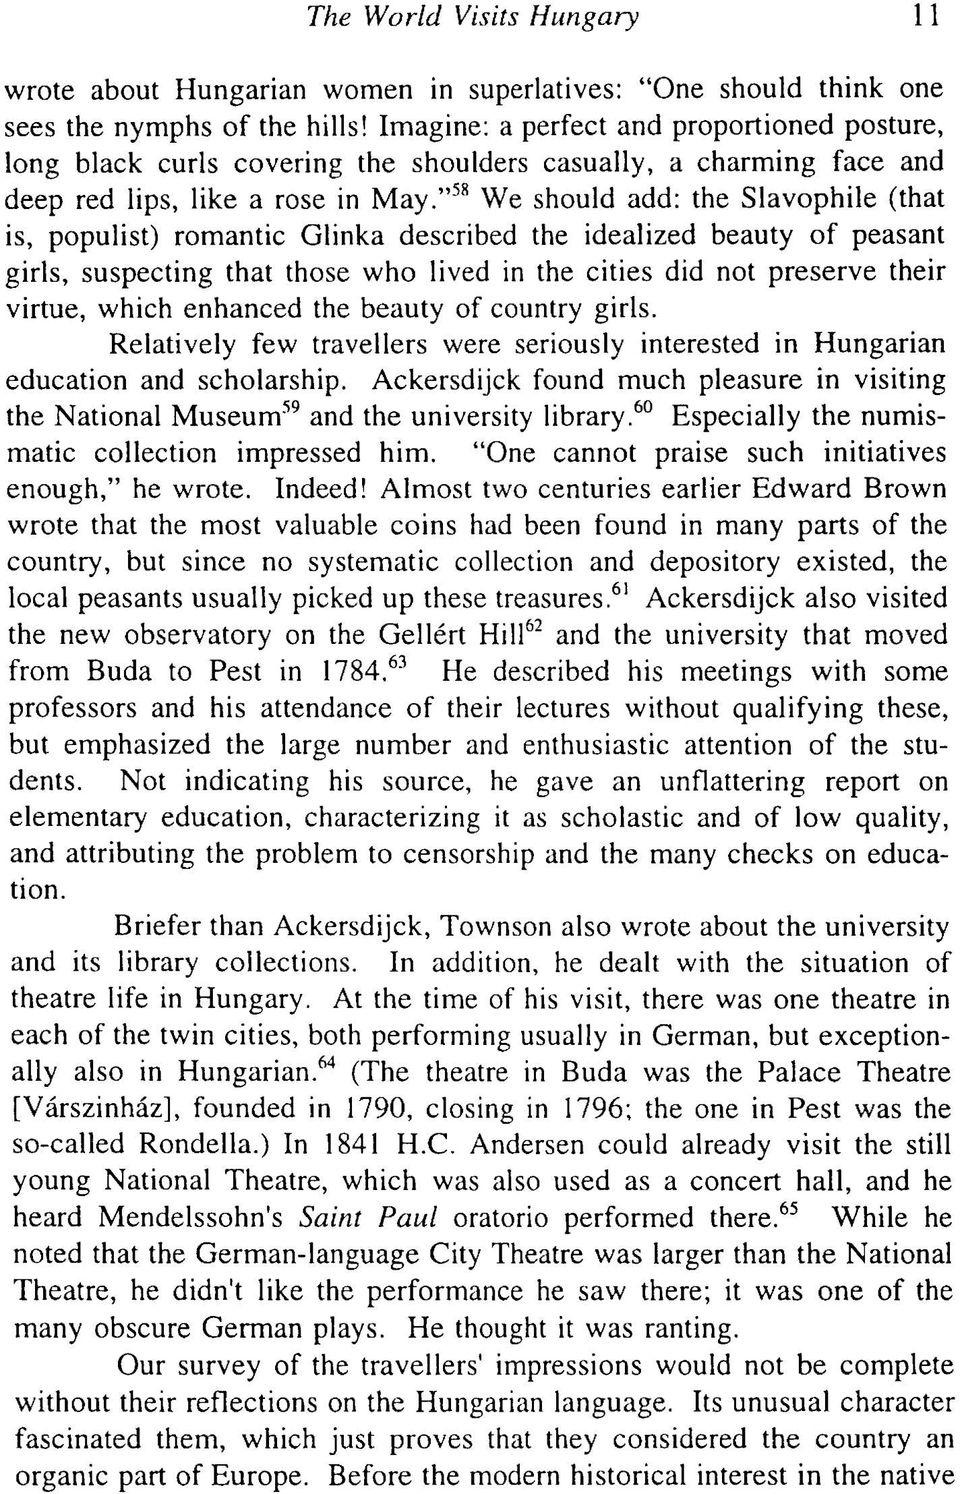 """ 58 We should add: the Slavophile (that is, populist) romantic Glinka described the idealized beauty of peasant girls, suspecting that those who lived in the cities did not preserve their virtue,"